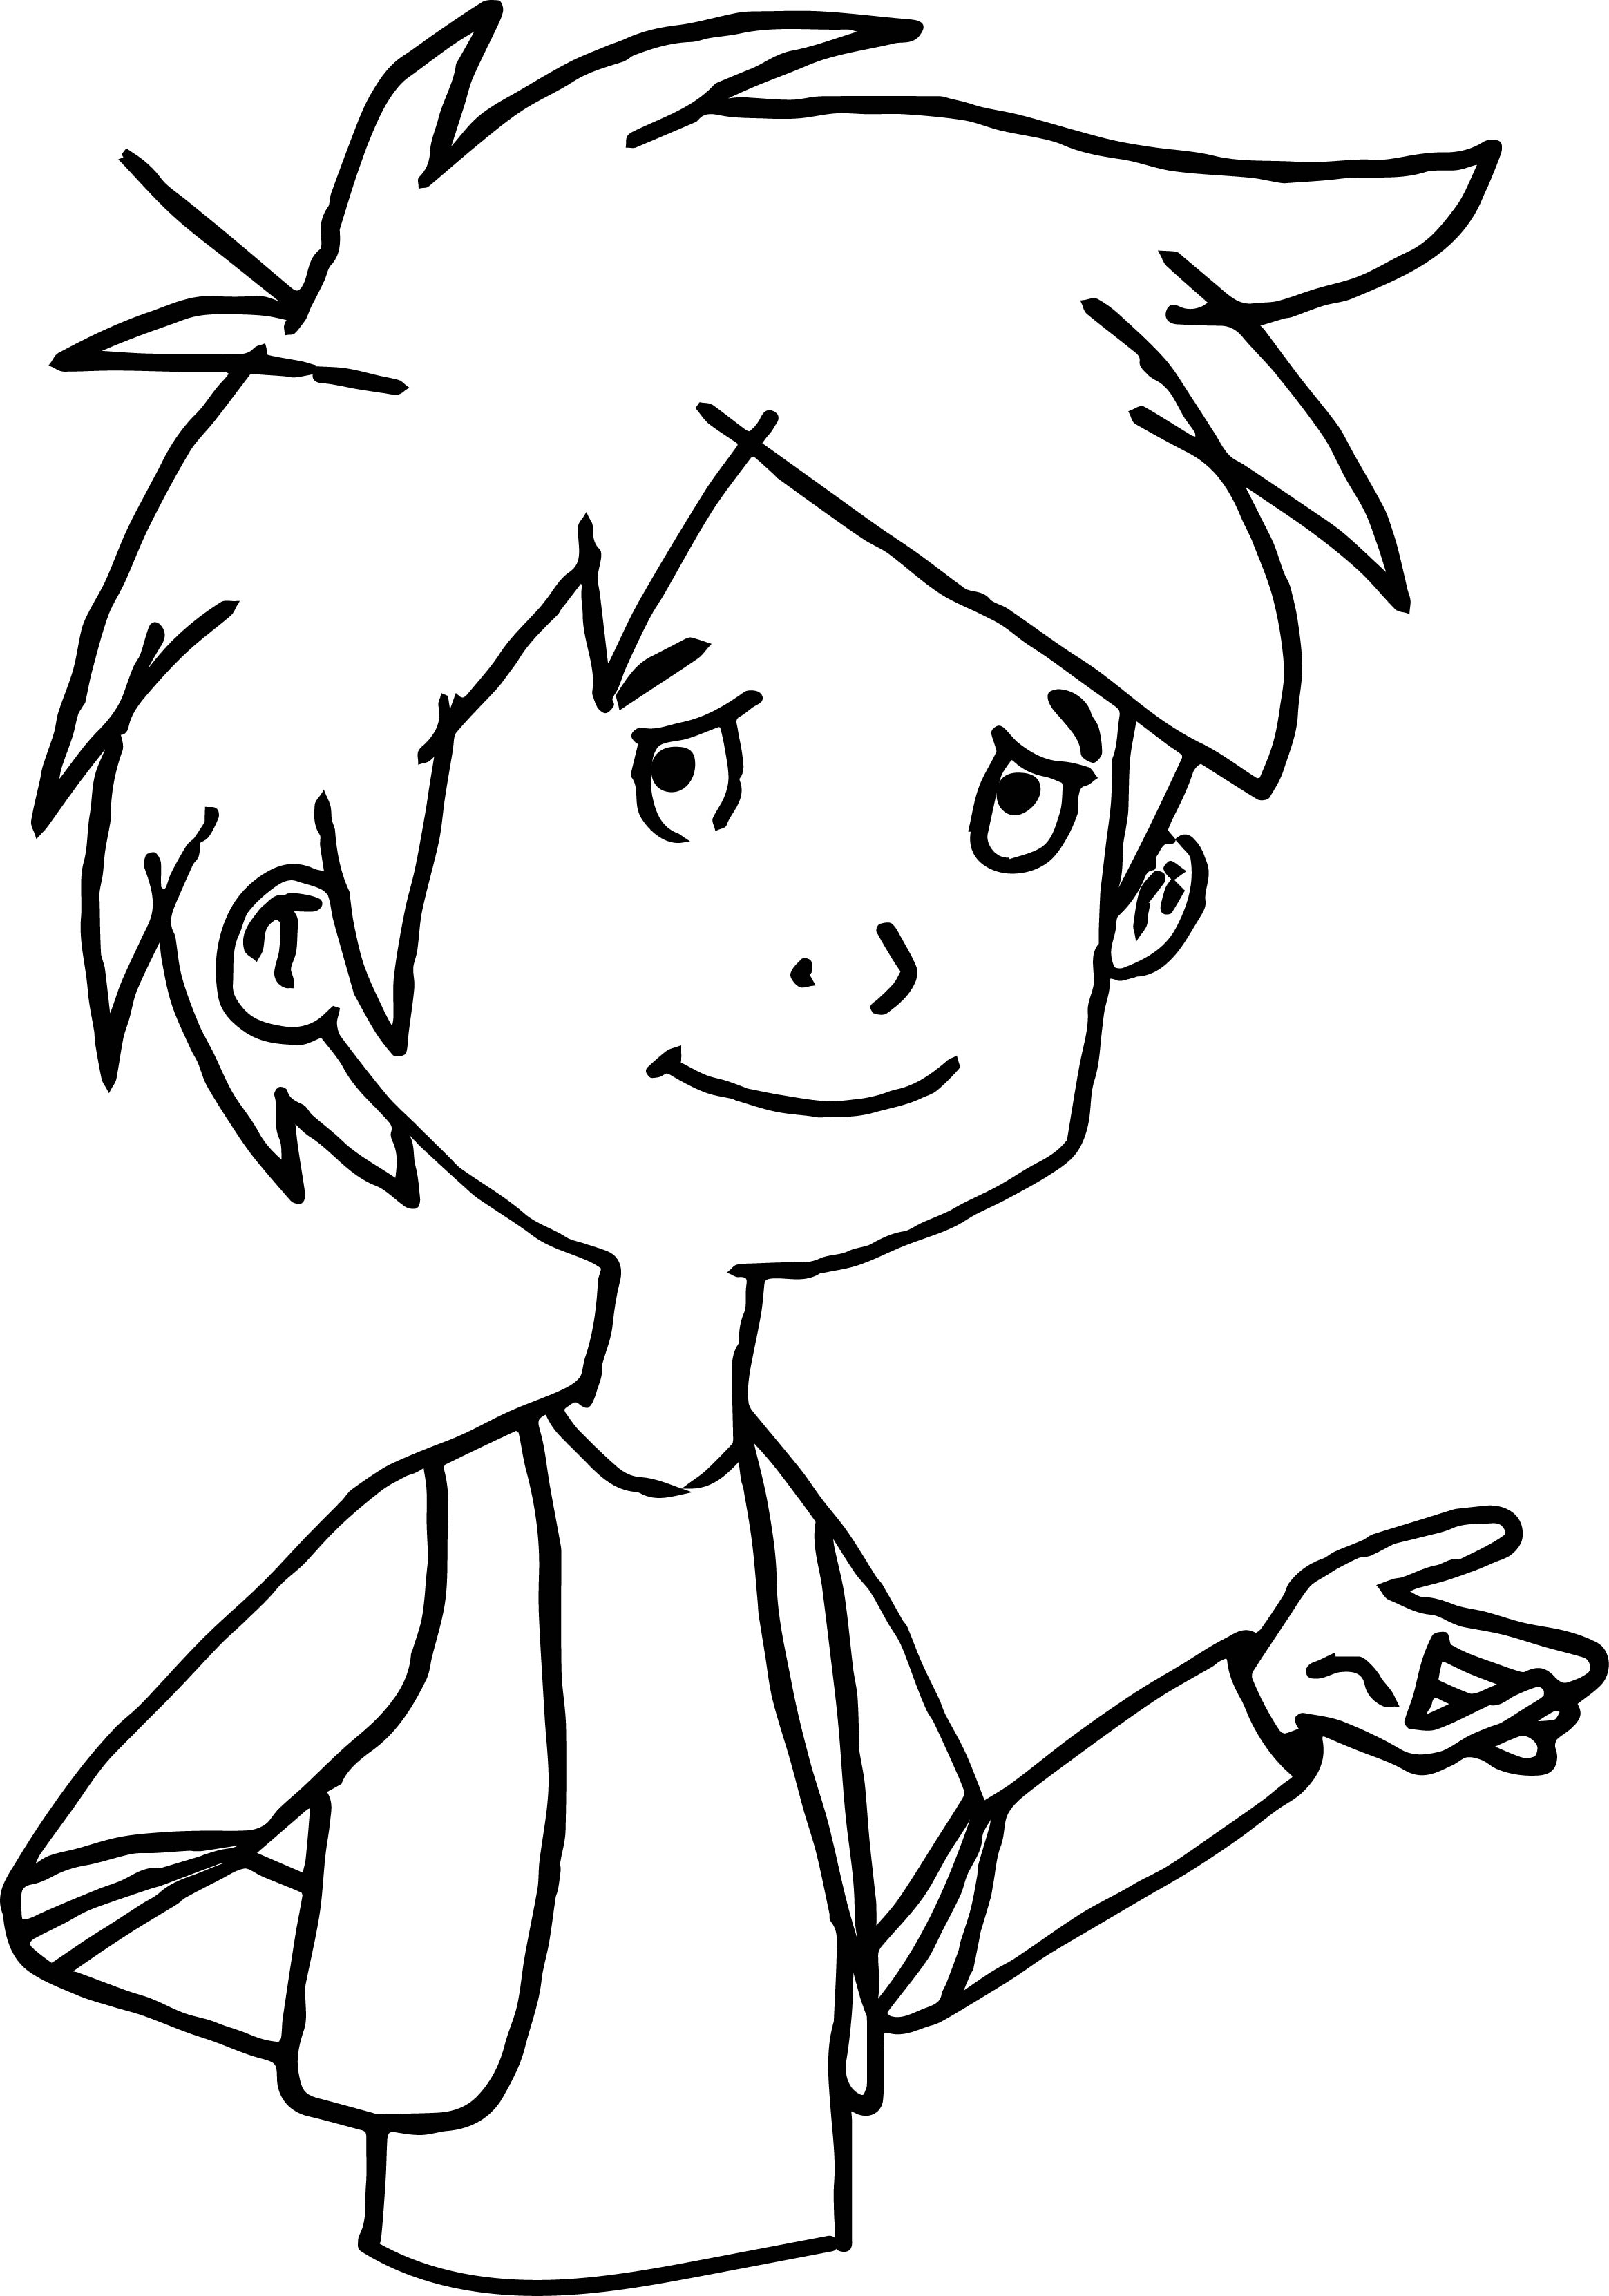 Child Trenk In Robe Coloring Page